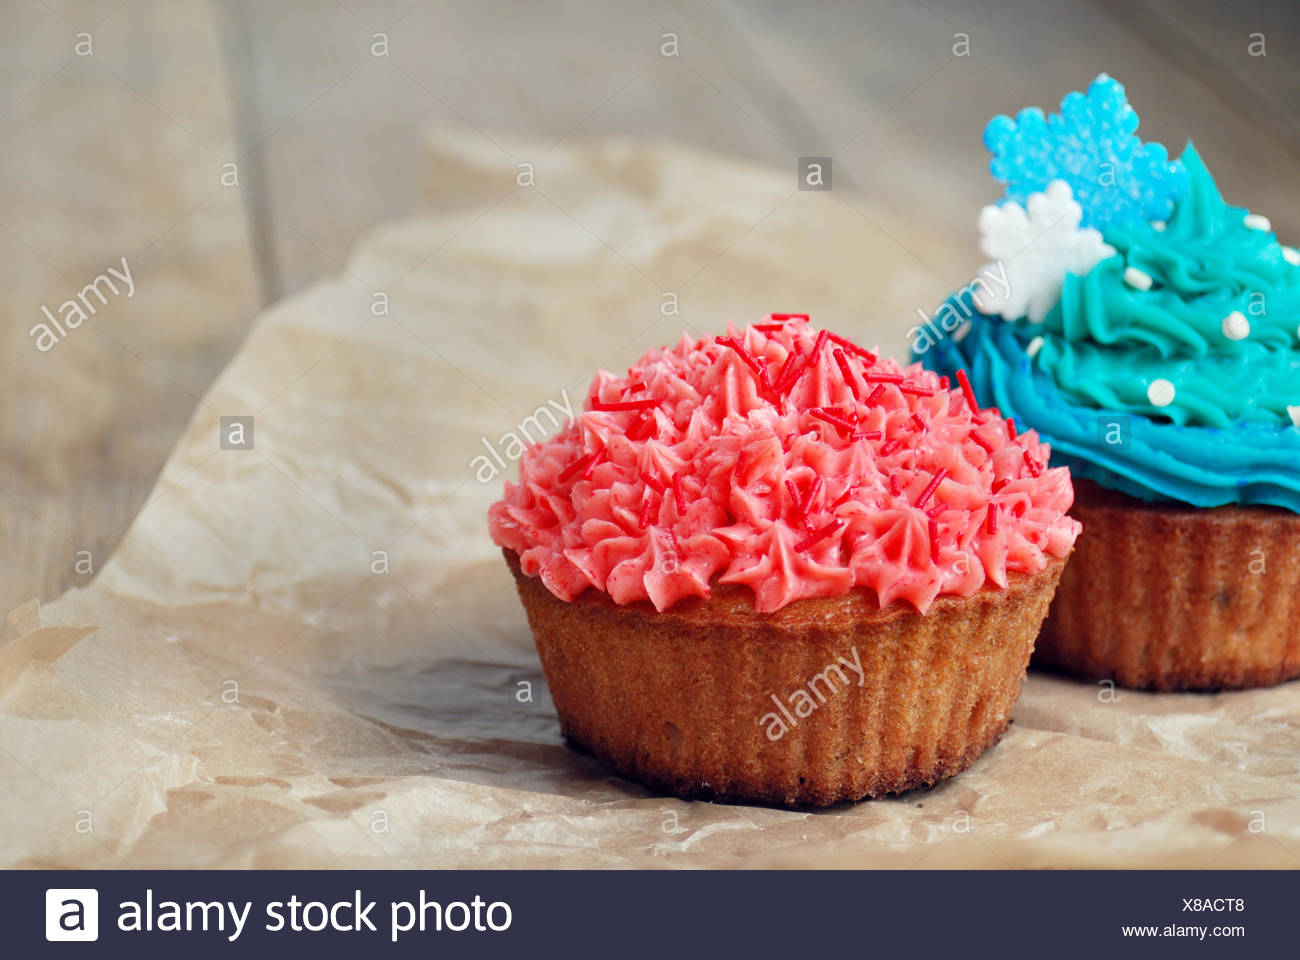 Remarkable Sweet Easter Christmas Birthday Cakes Stock Photo 280512744 Alamy Funny Birthday Cards Online Barepcheapnameinfo